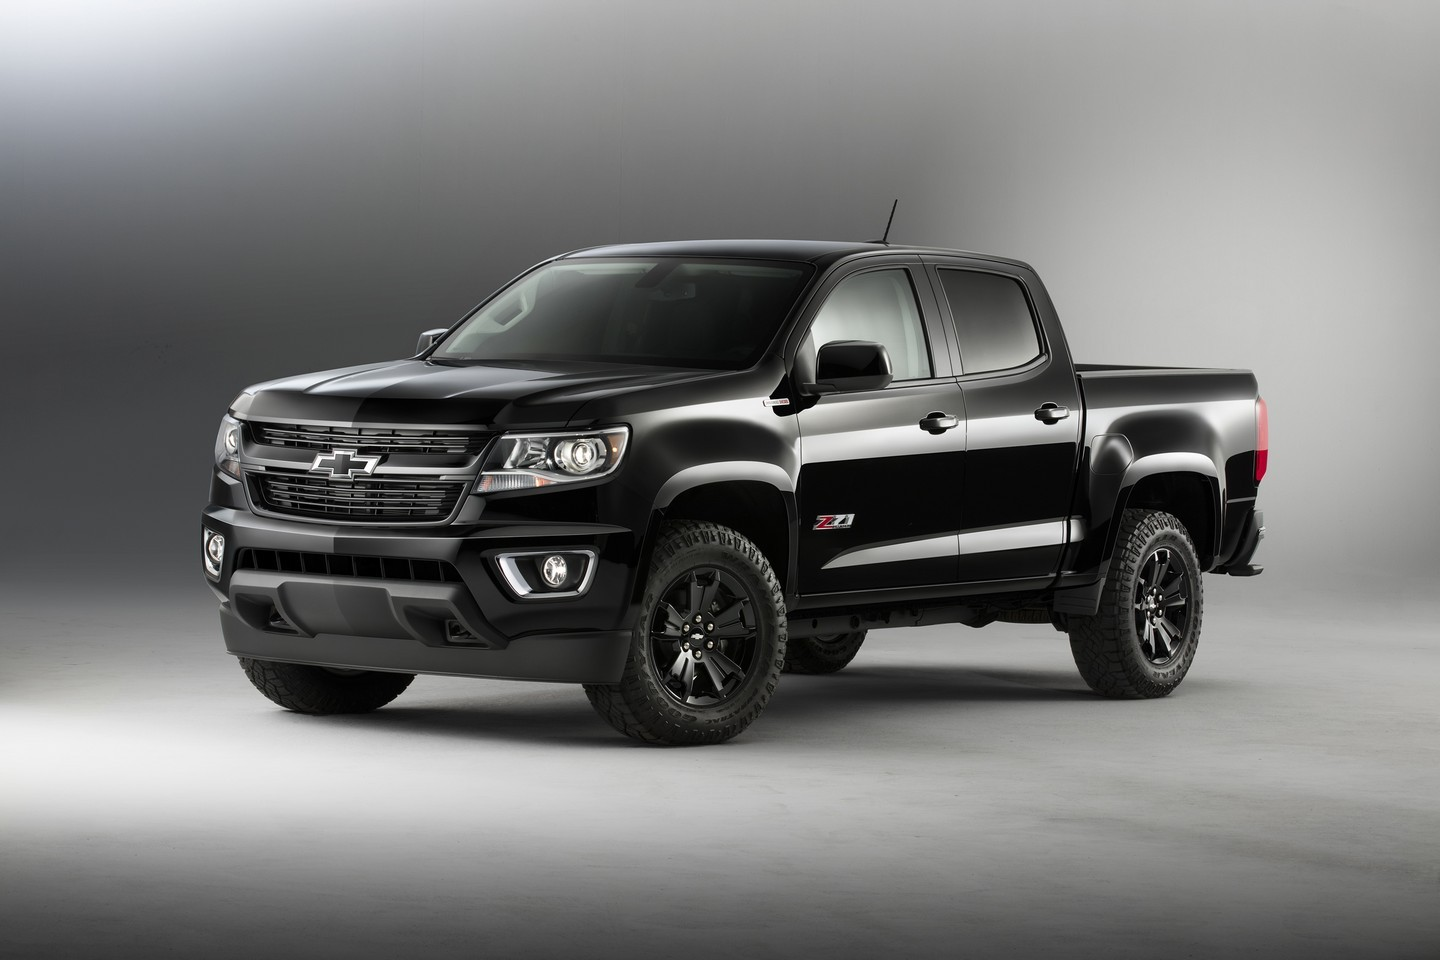 chevrolet launches midnight special edition versions for tahoe and suburban autoevolution. Black Bedroom Furniture Sets. Home Design Ideas